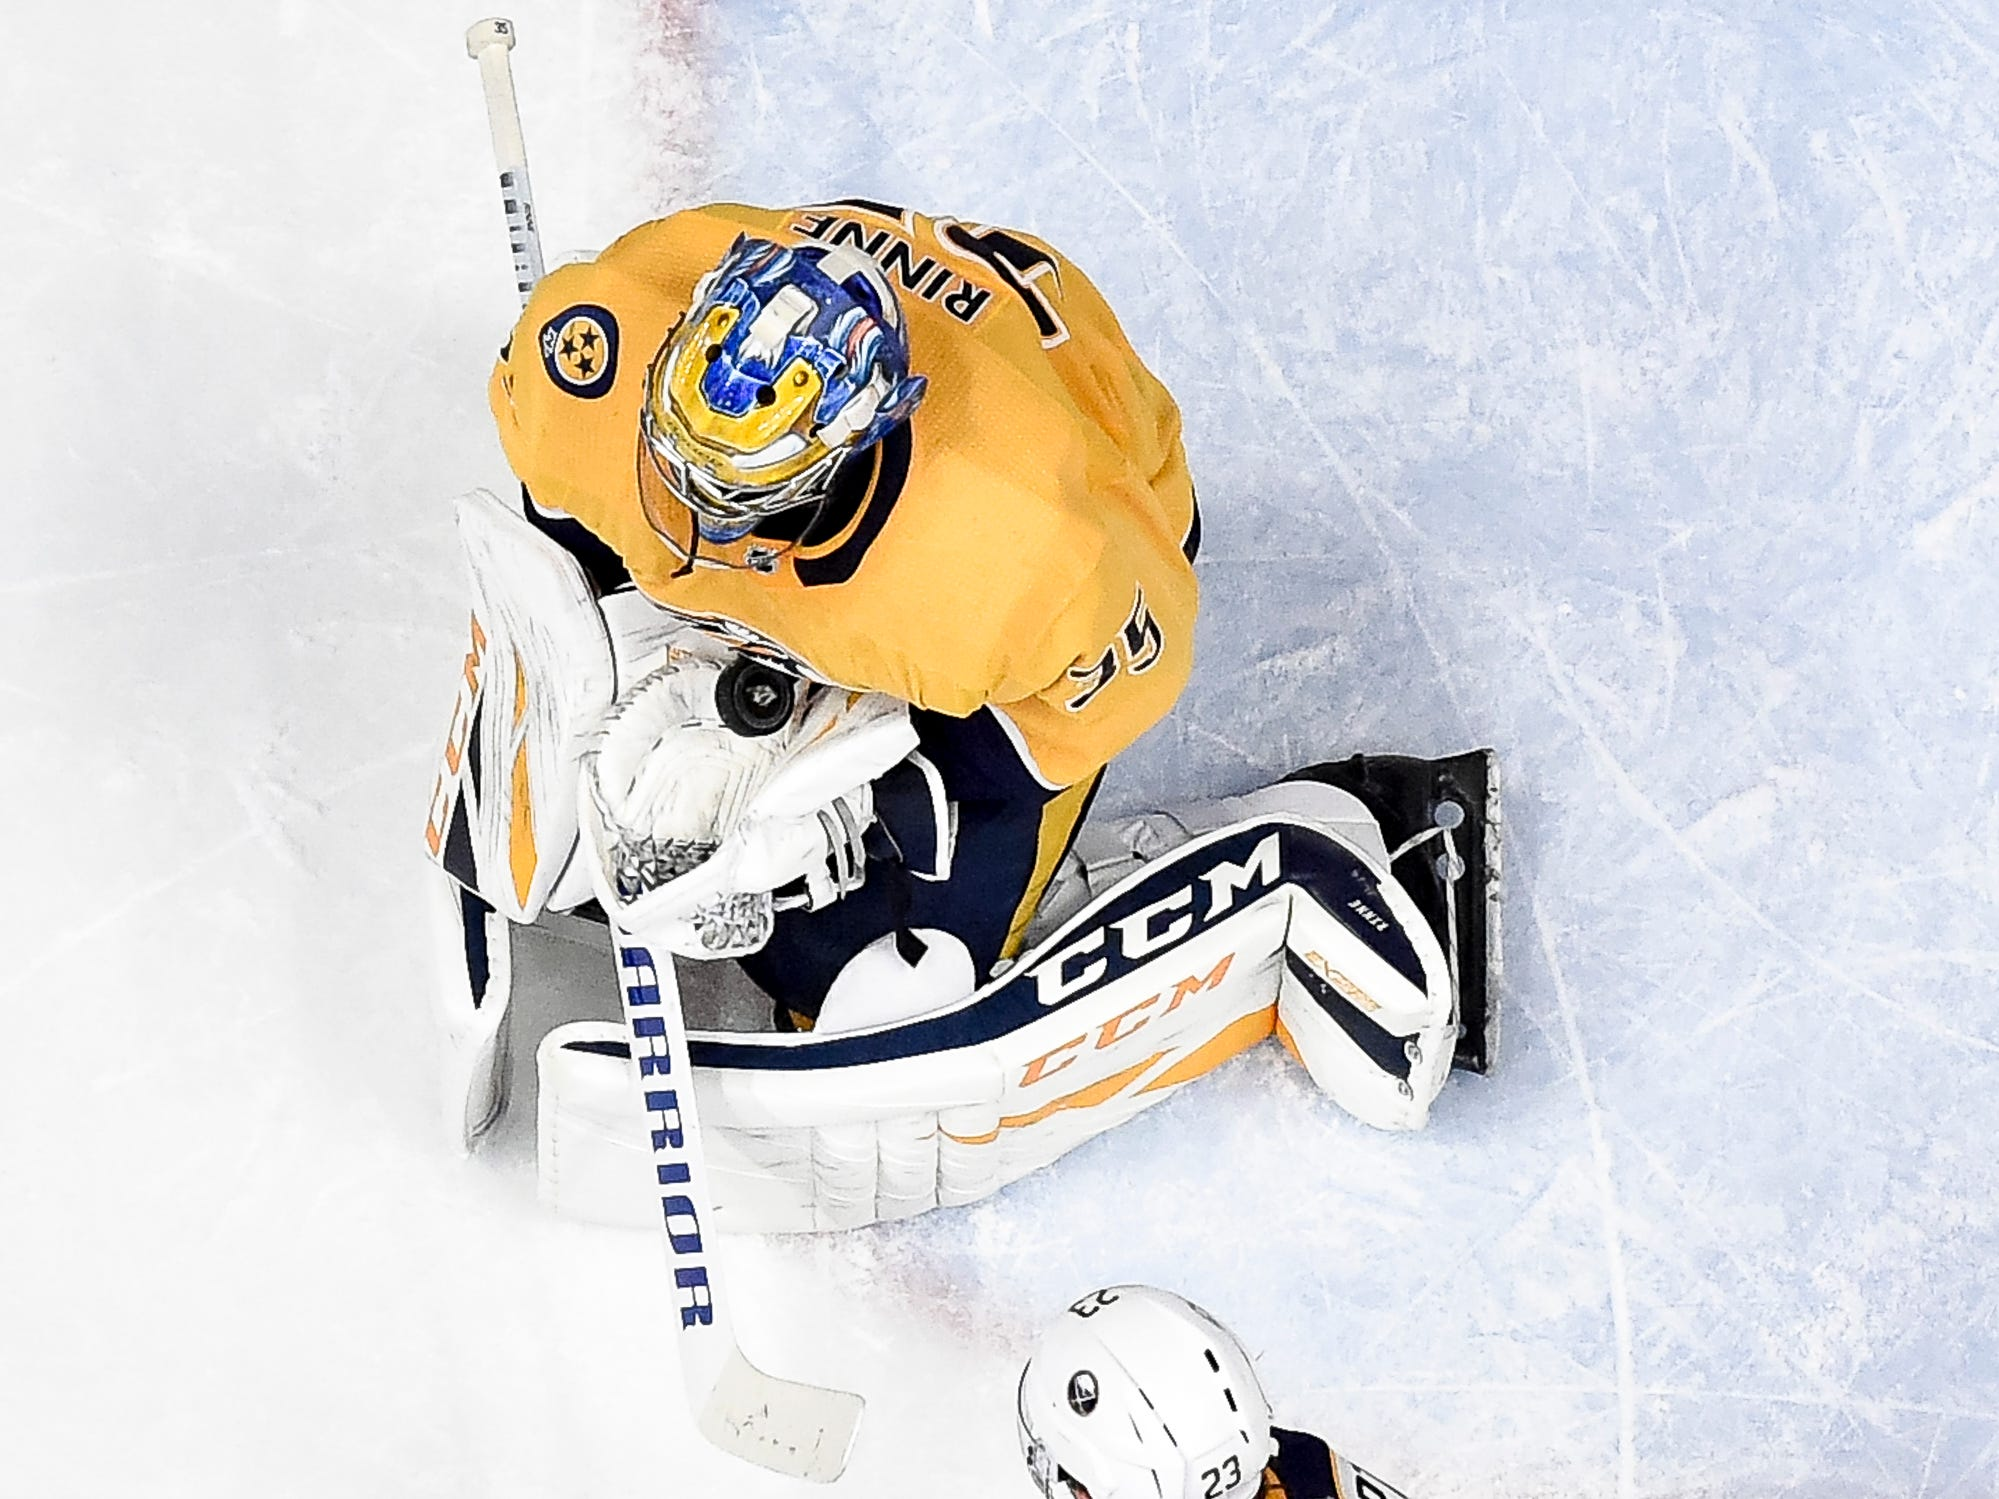 Nashville Predators goaltender Pekka Rinne (35) makes a save next to Buffalo Sabres center Sam Reinhart (23) during the third period at Bridgestone Arena in Nashville, Tenn., Monday, Dec. 3, 2018.